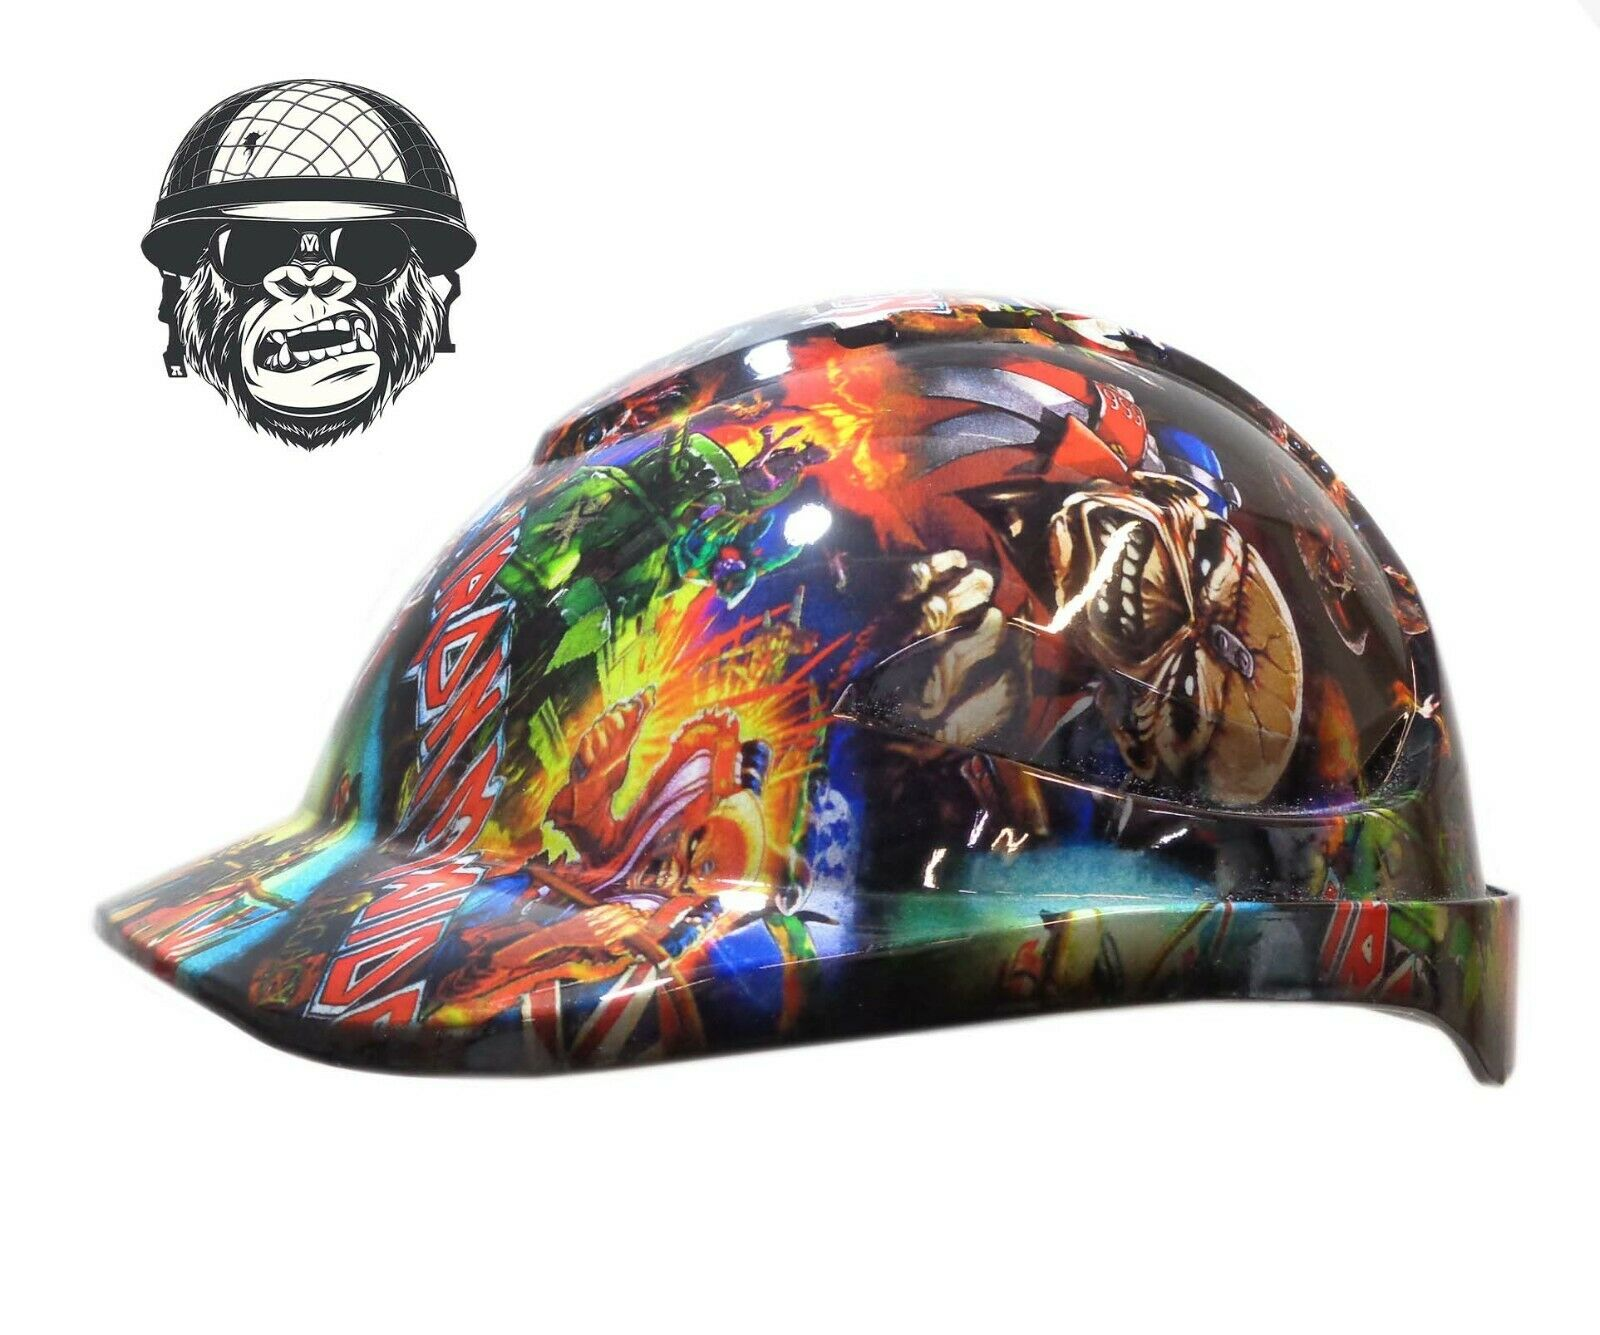 Custom Hydrographic Safety Hard Hat Mining Industrial PPE - IRON MAIDEN CAP